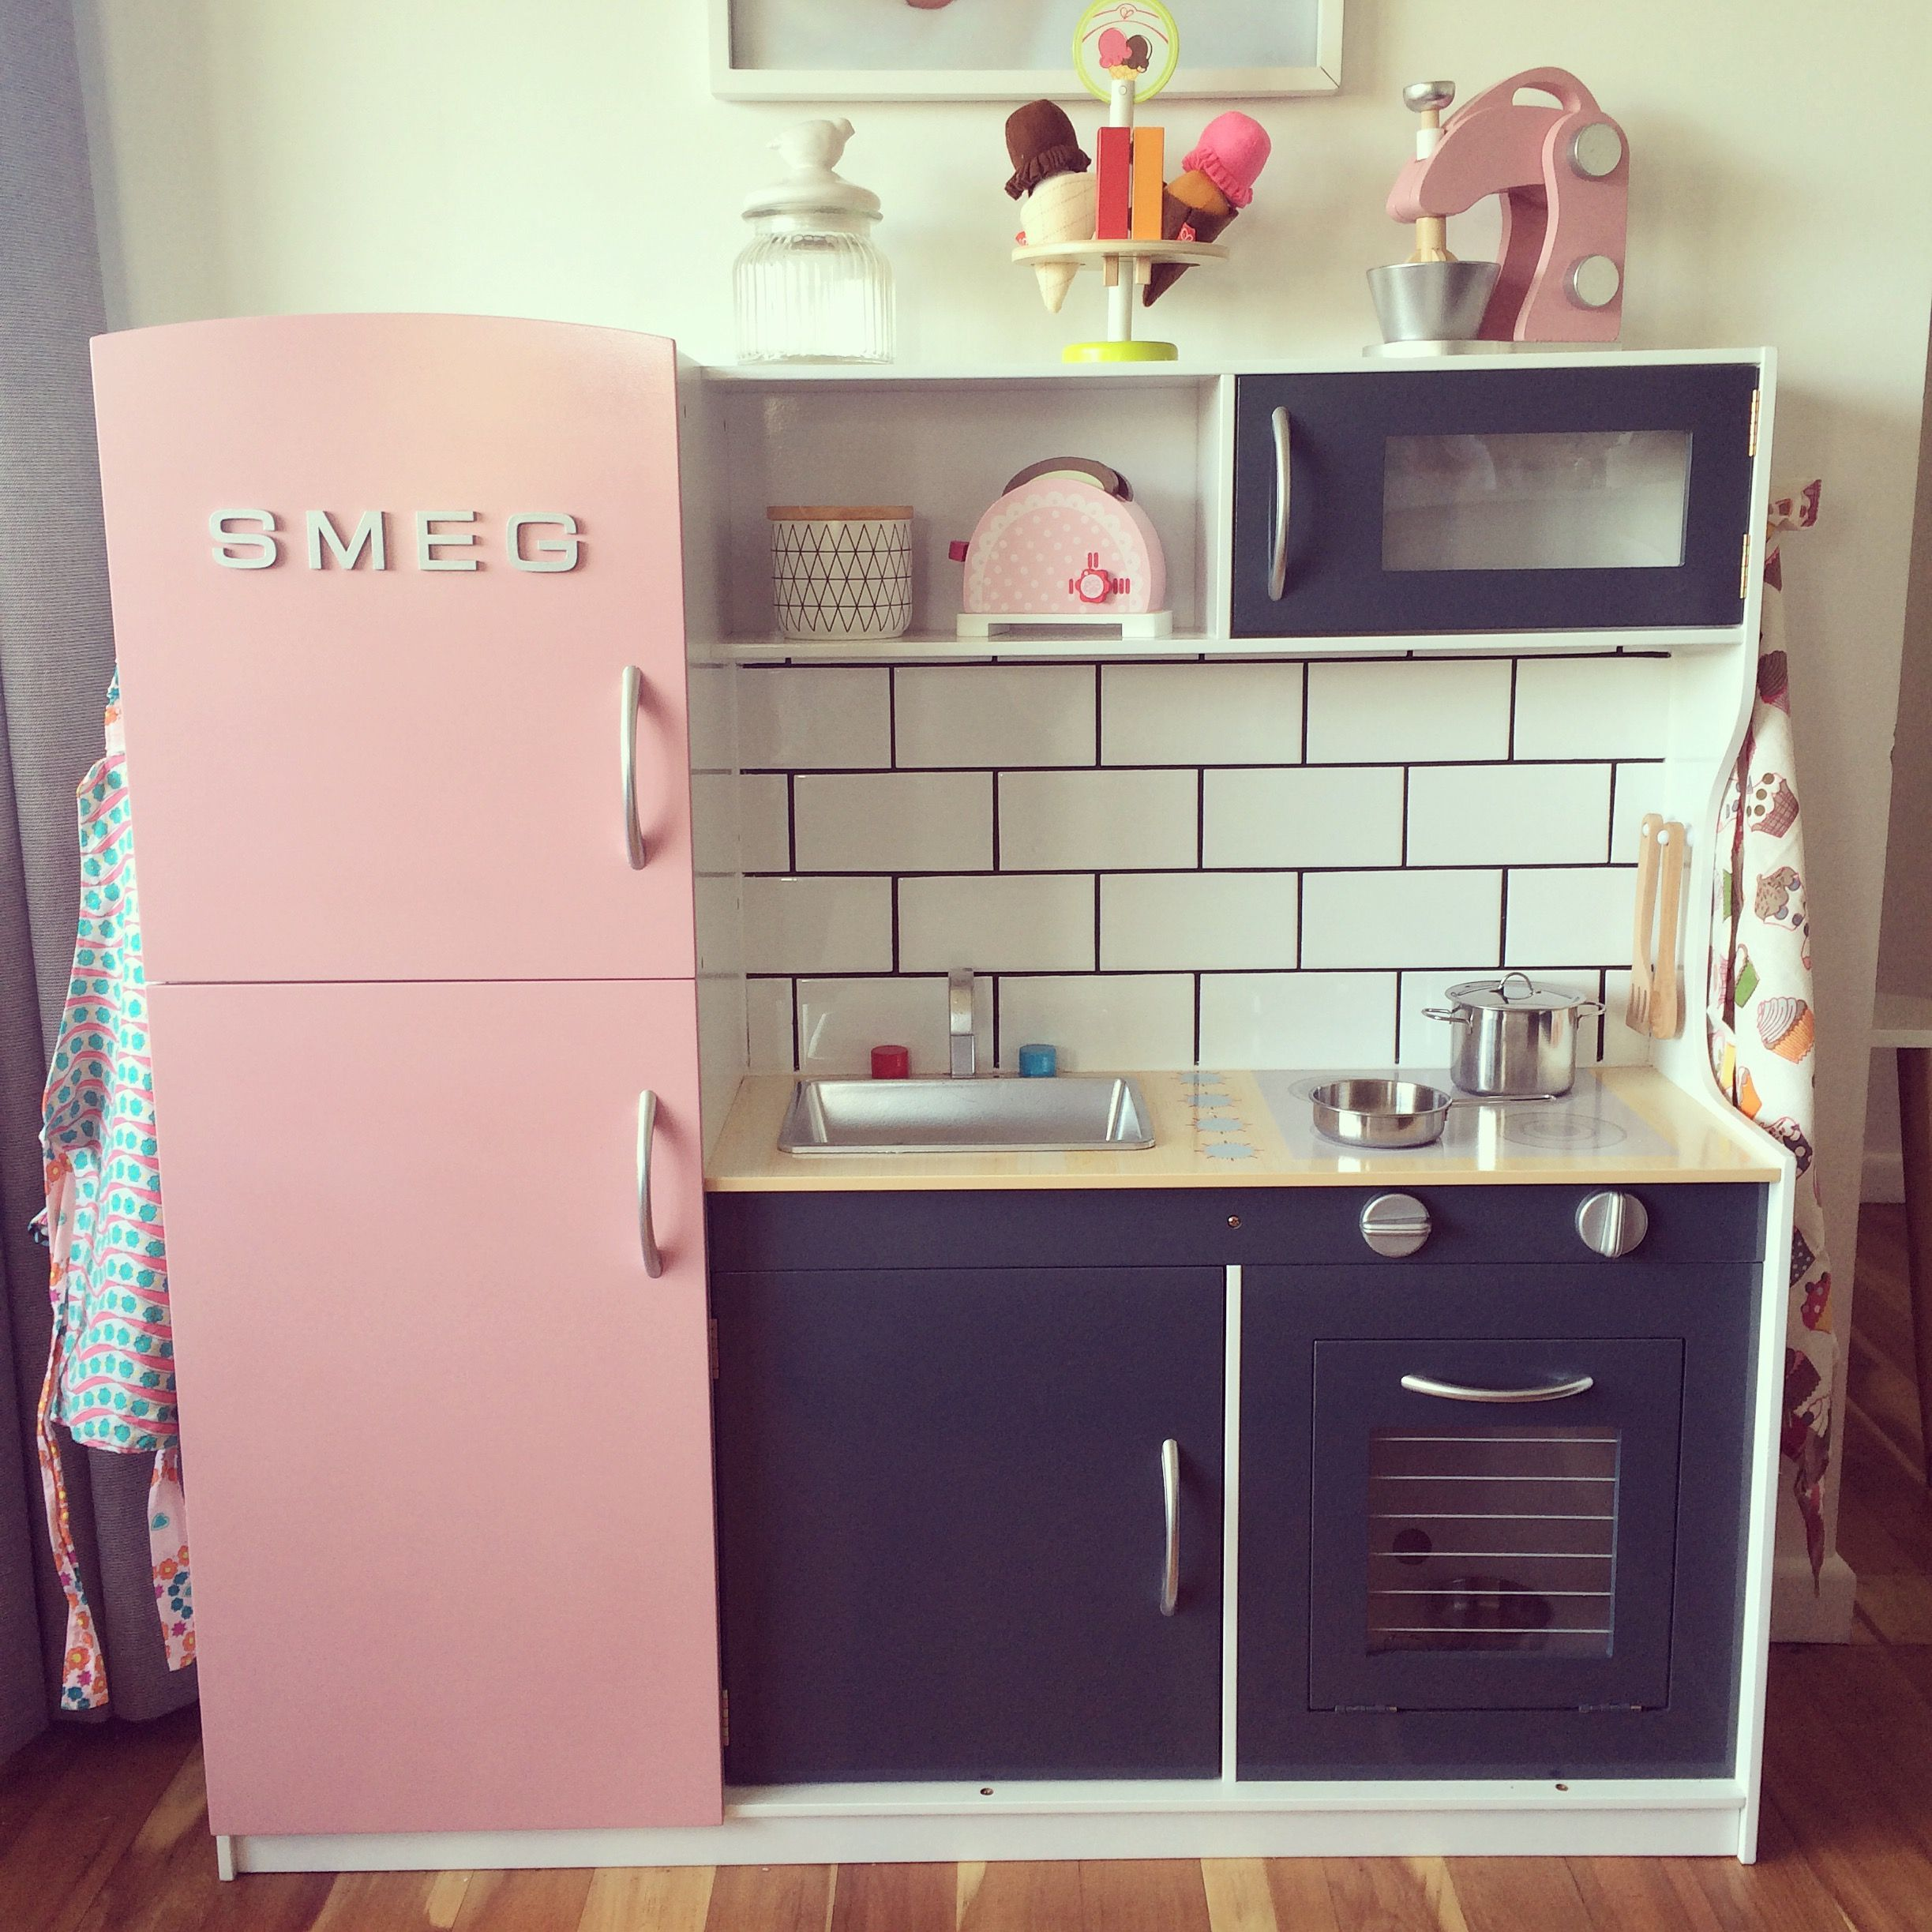 Our Kmart Kids Kitchen Hack Getting Our Pinterest On Pinterest Kitchens Cubby Houses And